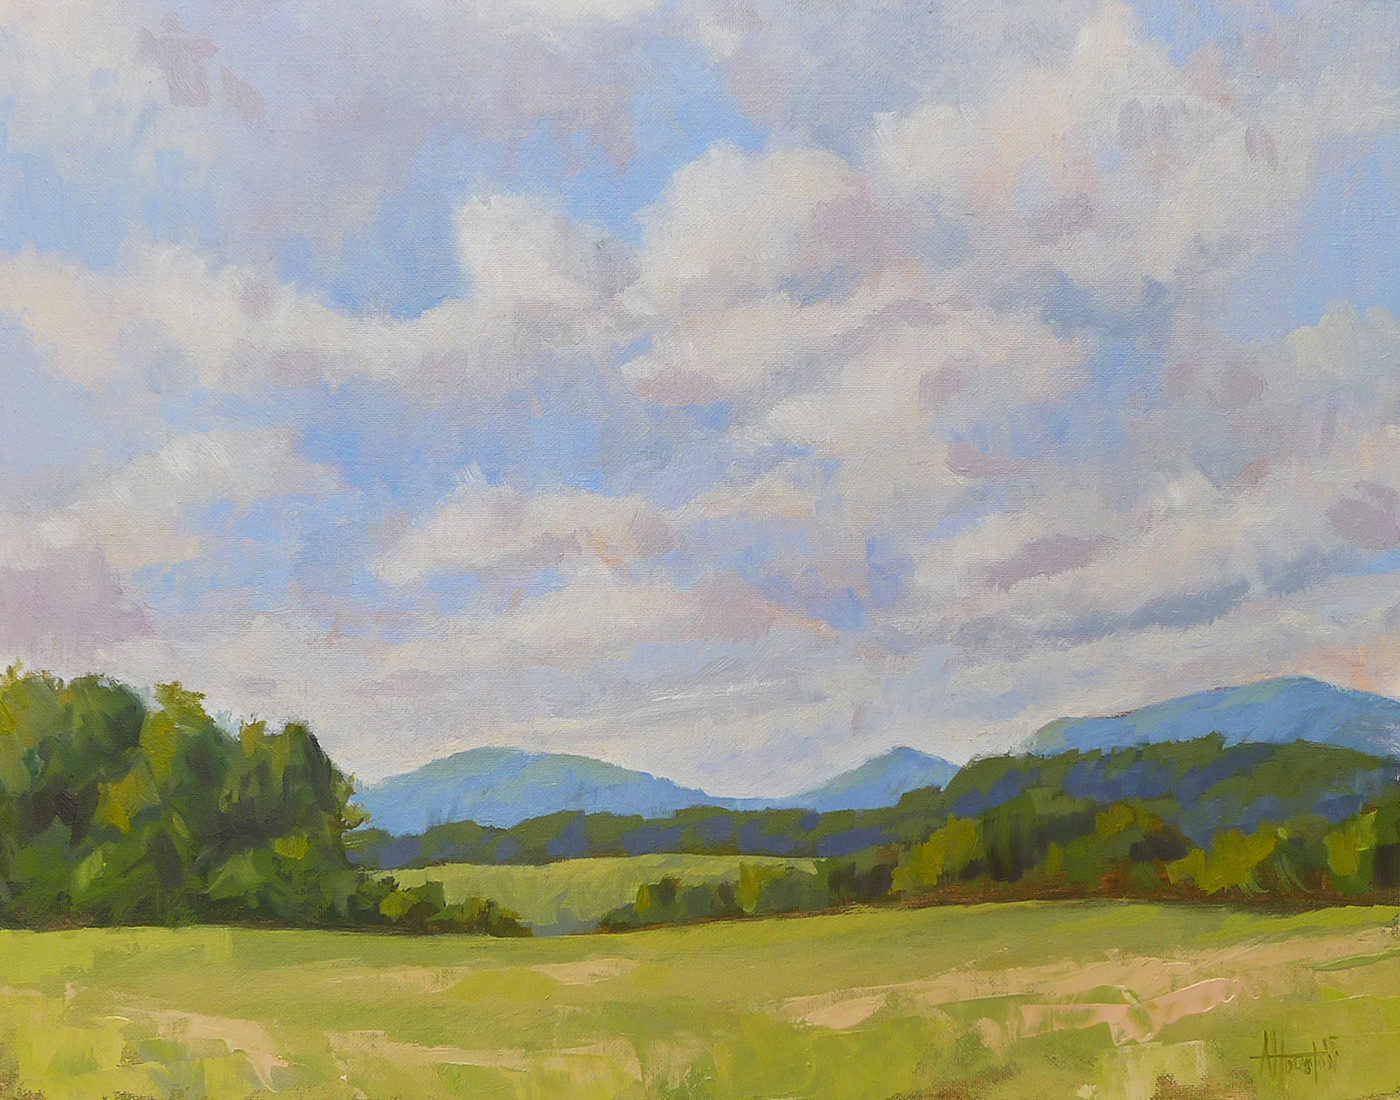 Morning Sky - Impressionist Painting by Adam Houston